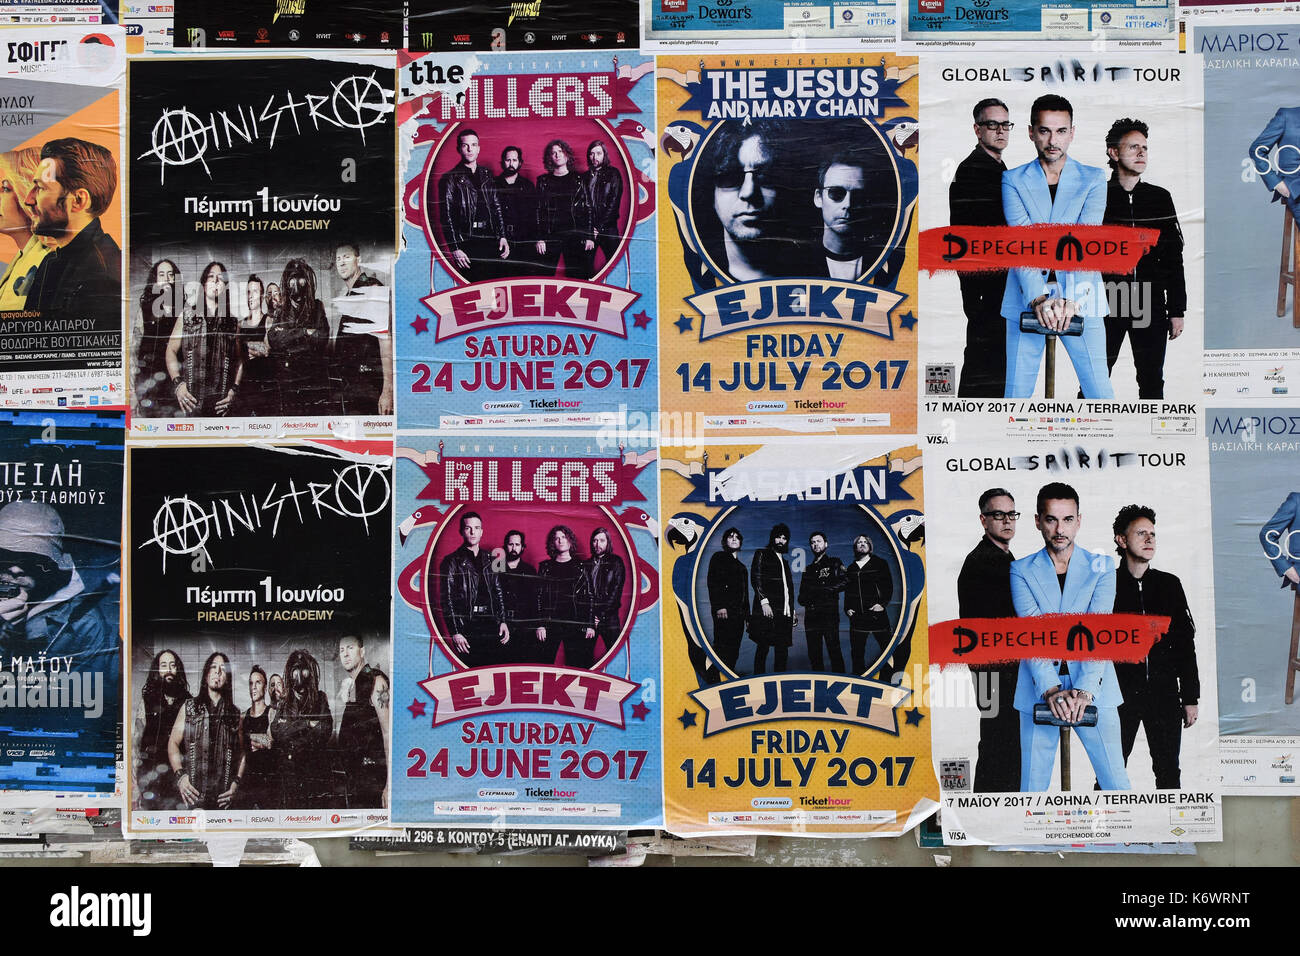 ATHENS, GREECE - APRIL 24, 2017: Wall with concert posters live music by Depeche Mode, Jesus And Mary Chain, Kasabian, The Killers and Ministry. - Stock Image